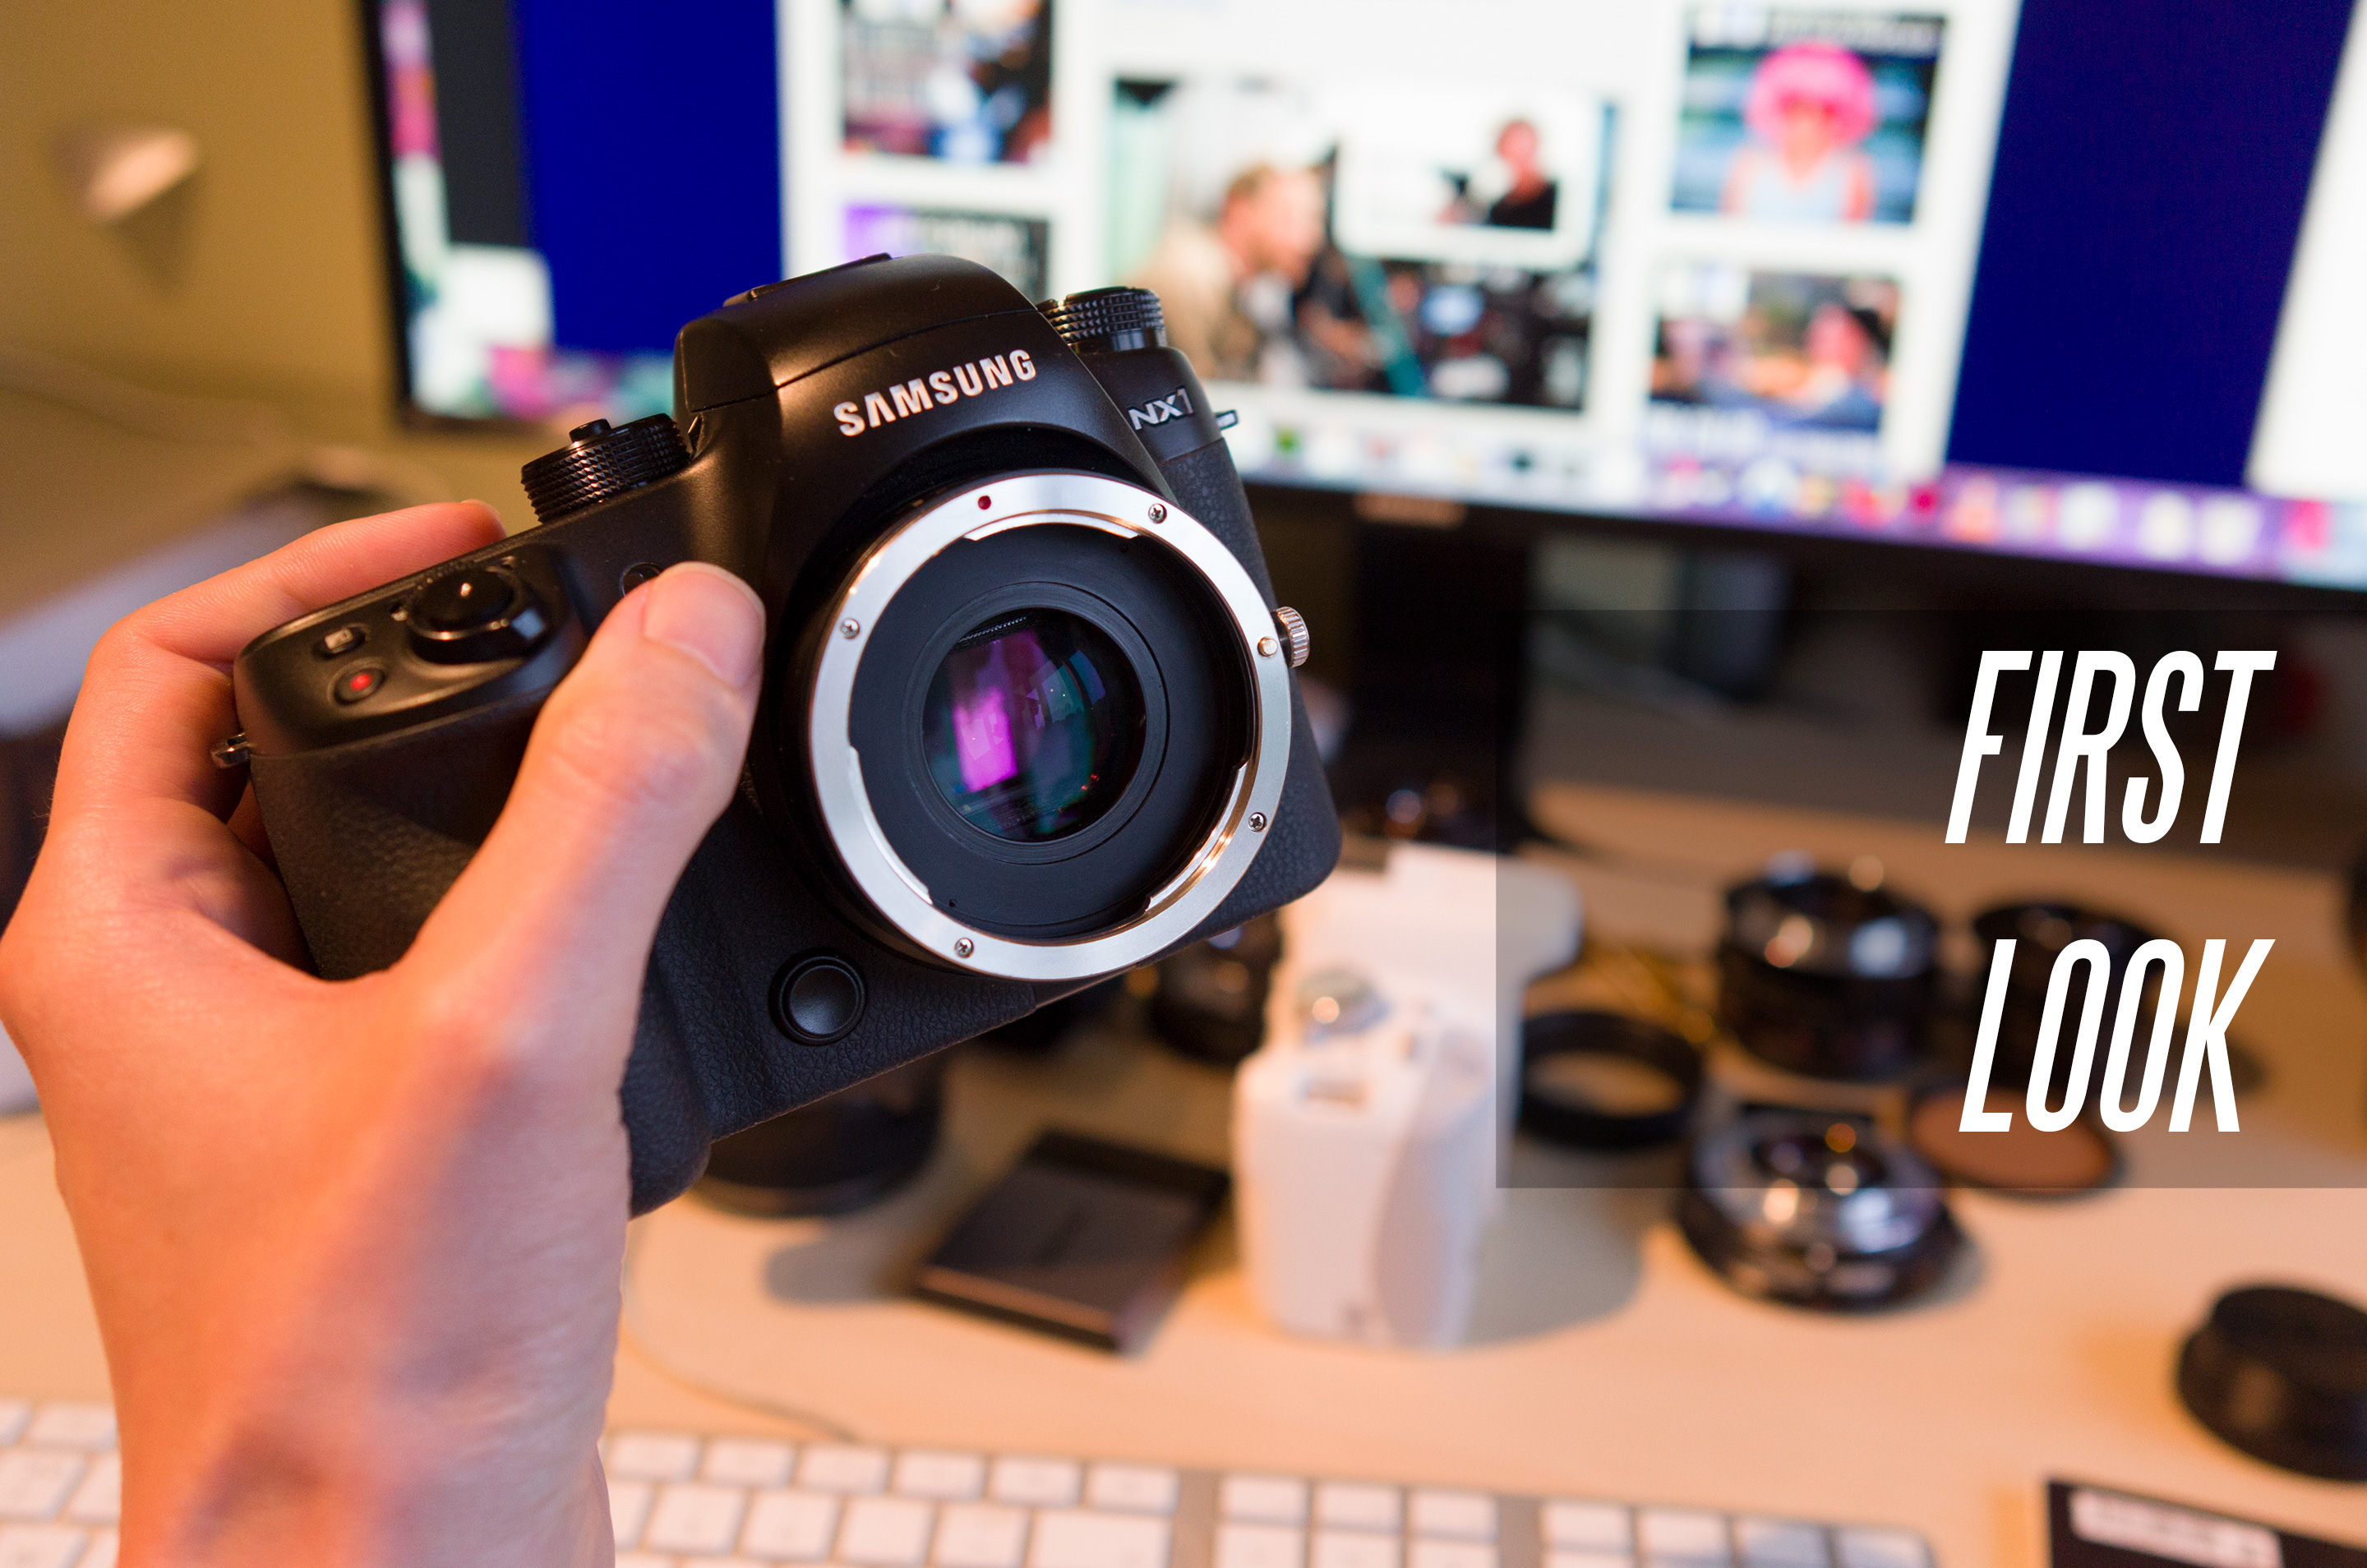 Samsung NX1 is now full frame - First look at the Canon mount NX-L ...